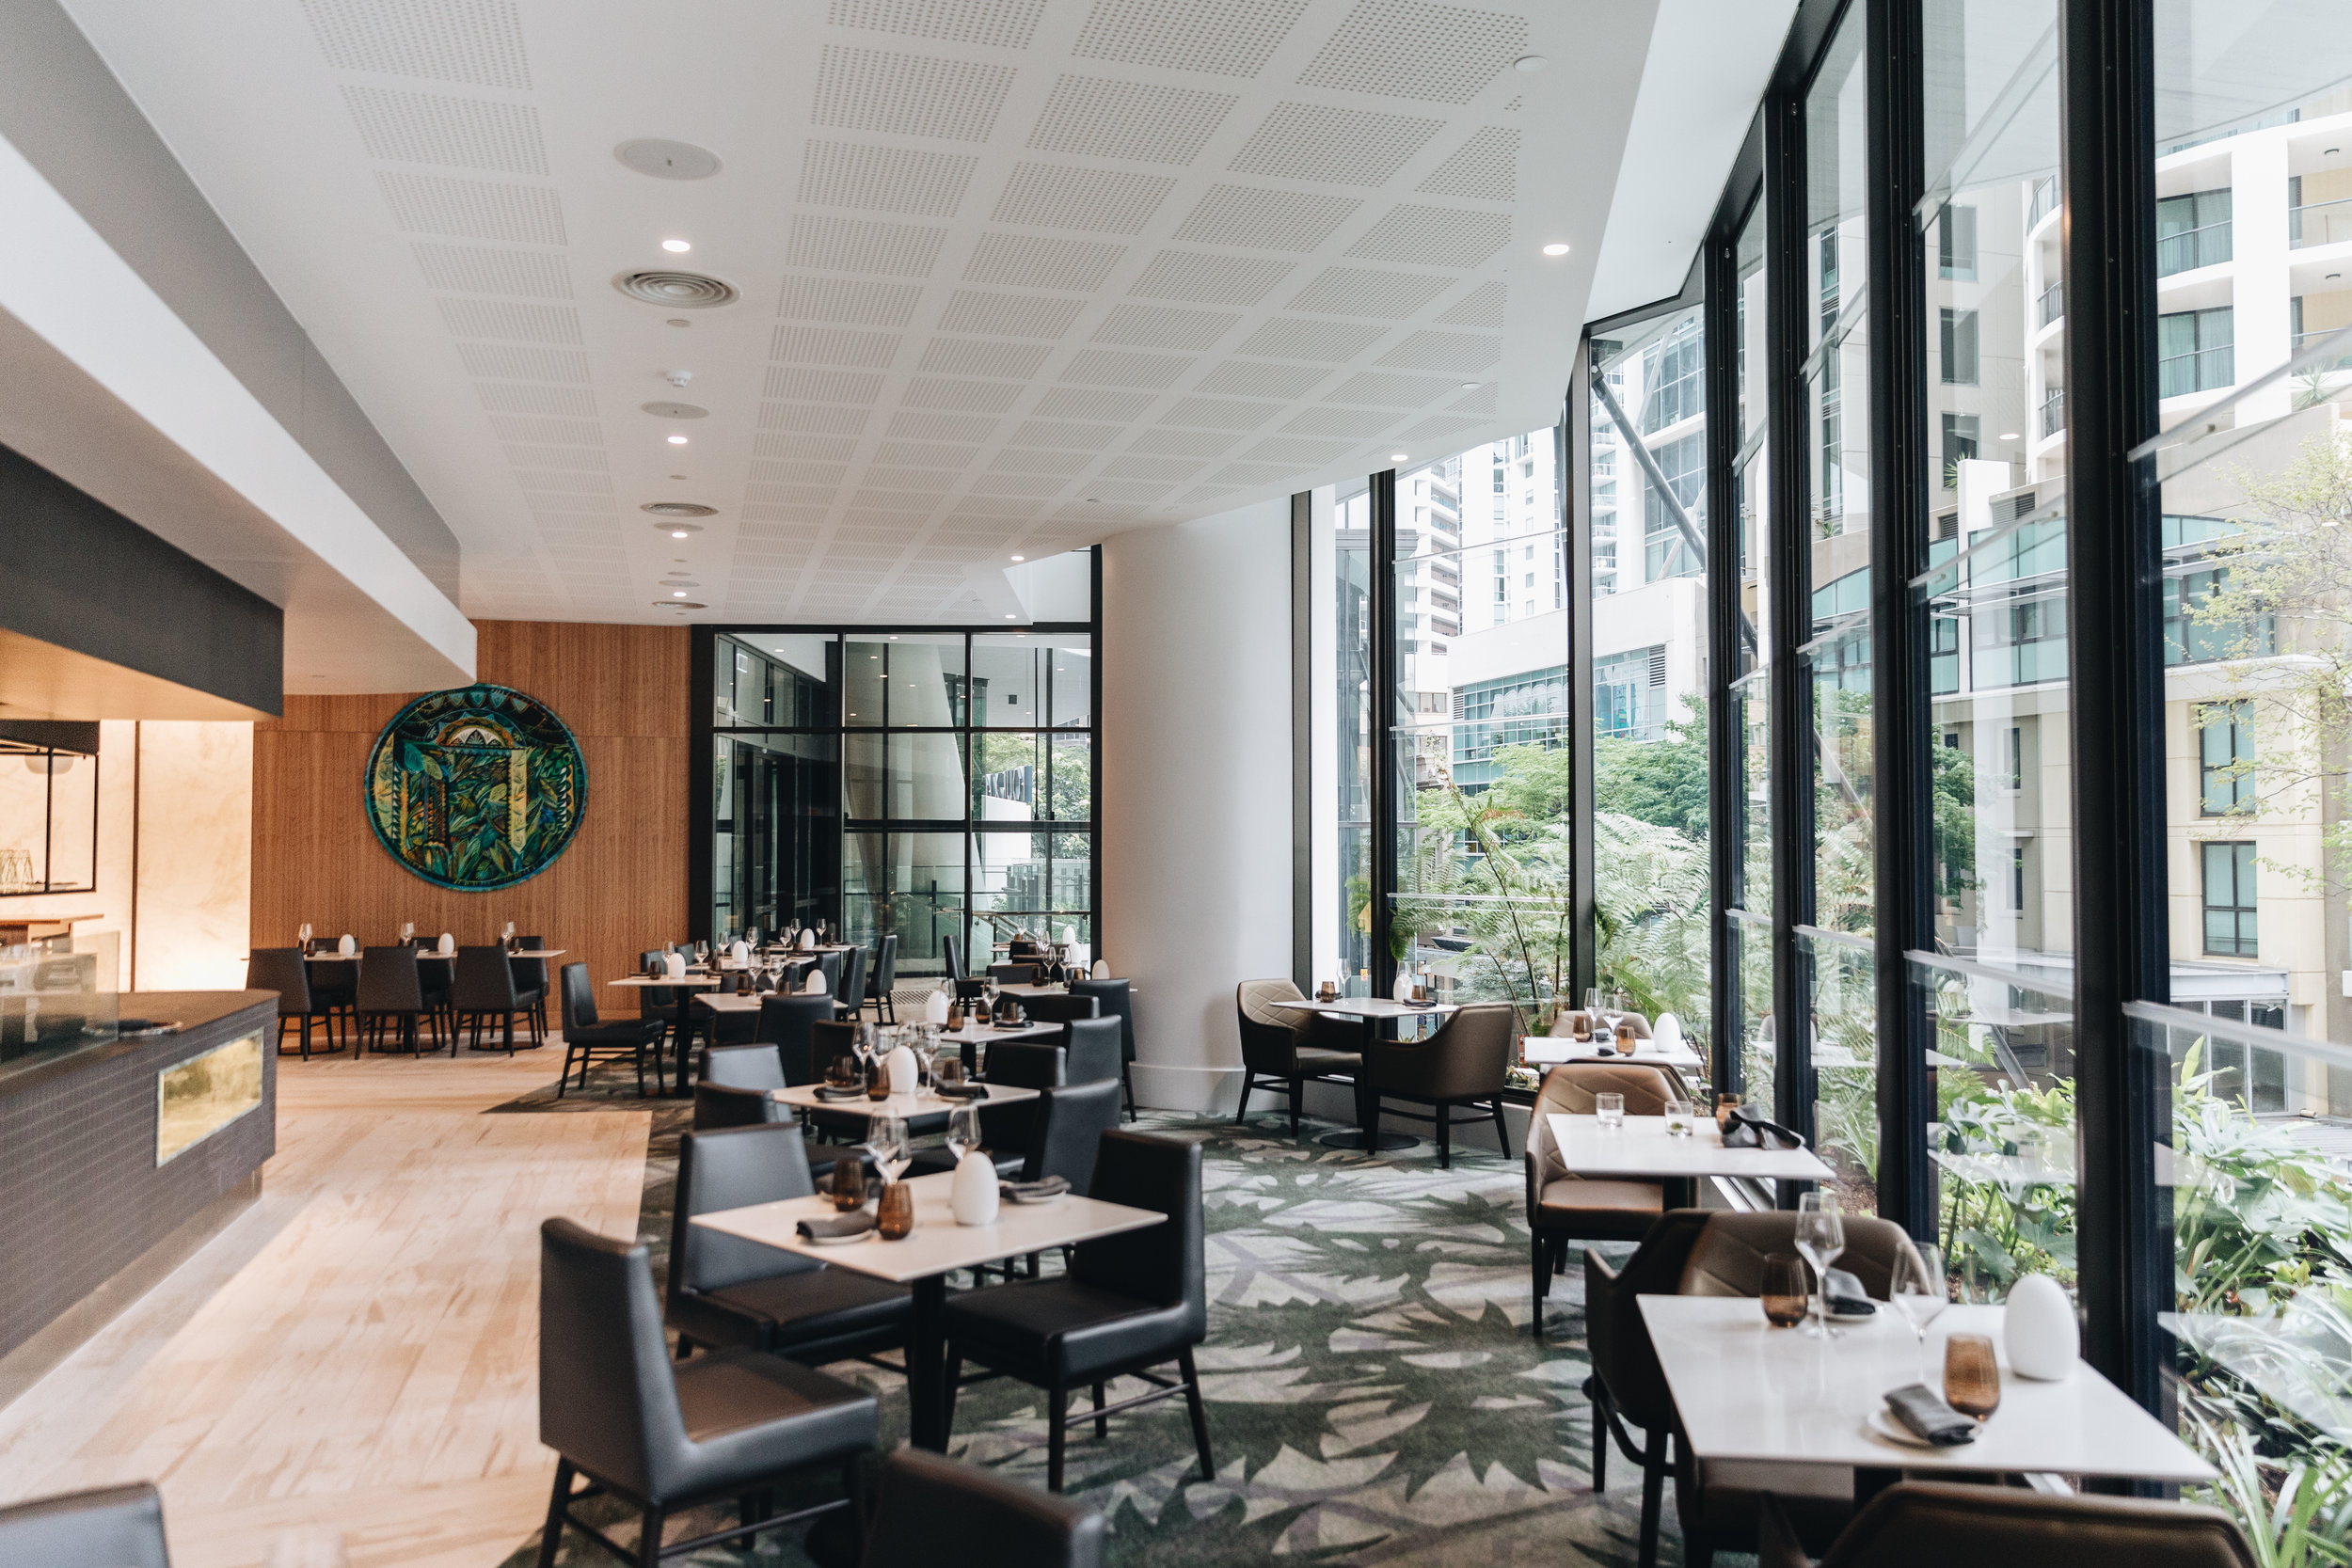 The Westin Brisbane, Eden's Table. Credit: Art Pharmacy Consulting/Savannah Van der Niet